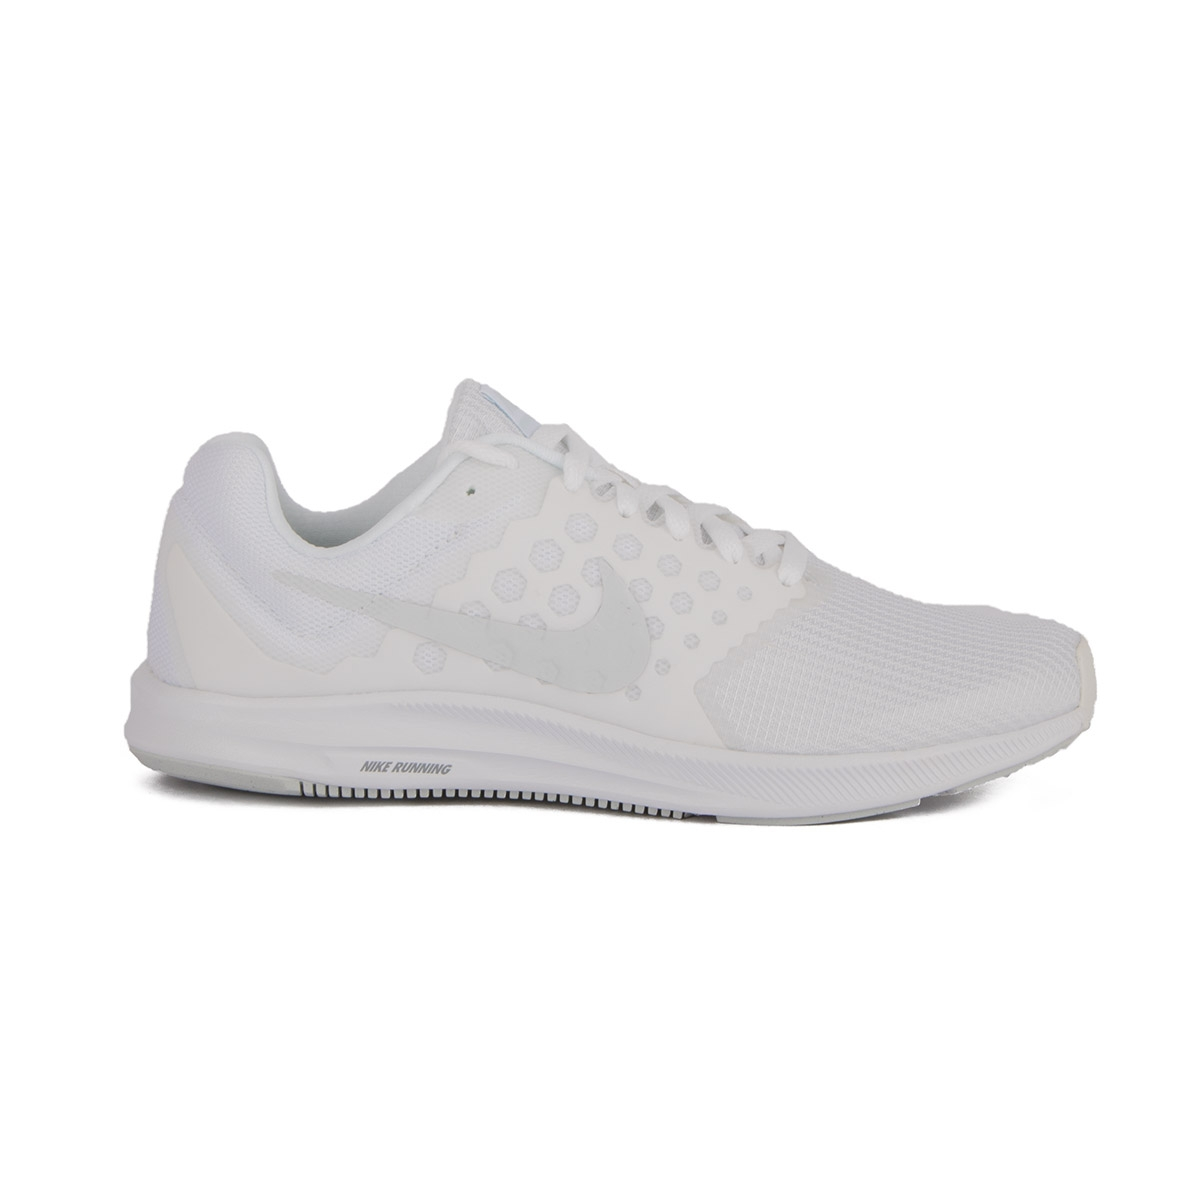 Nike Downshifter 7 Blanco White Pure Platinum Hombre